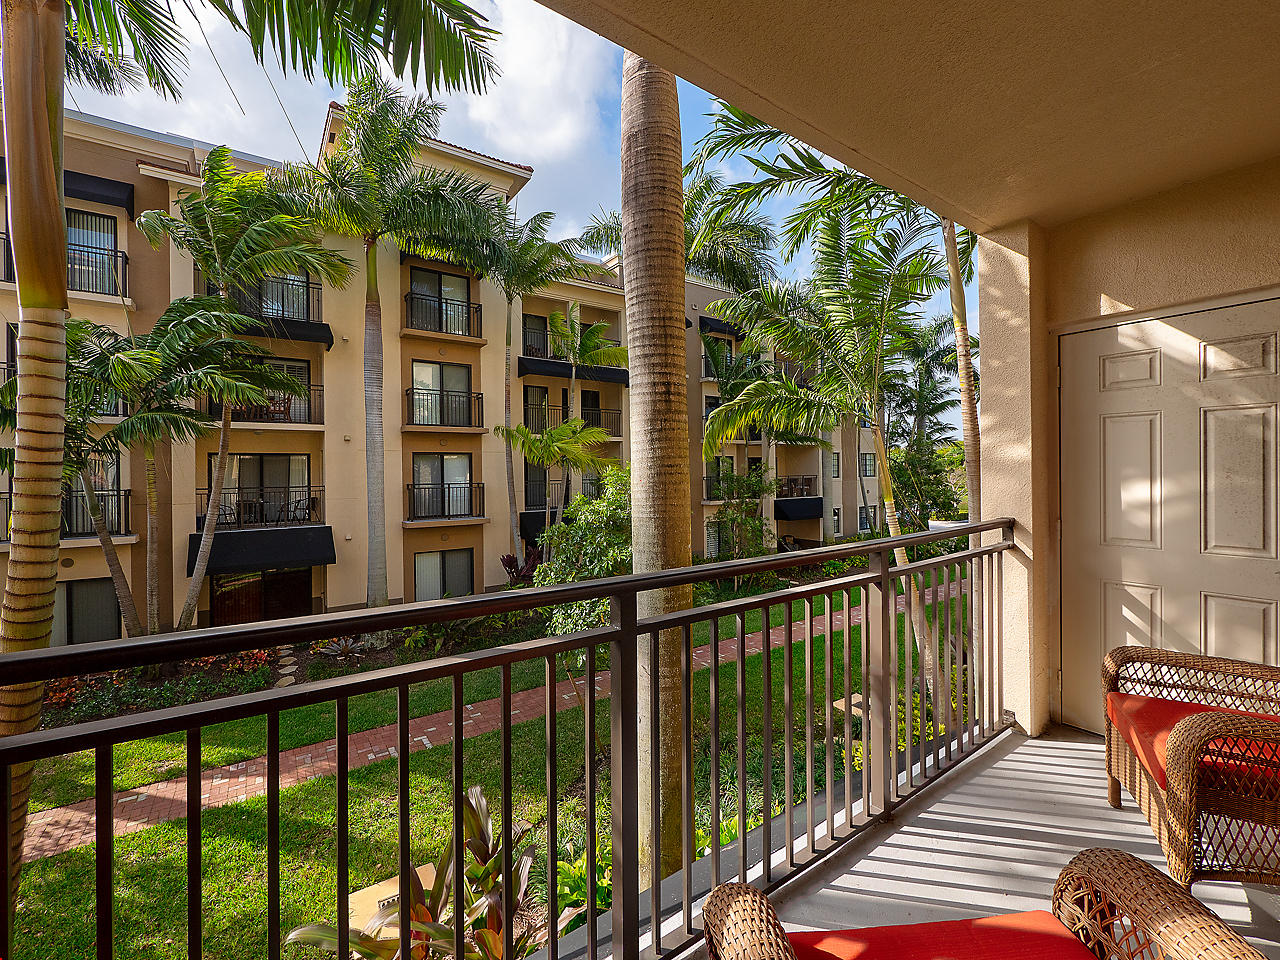 One of Palm Beach Gardens 3 Bedroom Homes for Sale at 4905 Midtown Lane